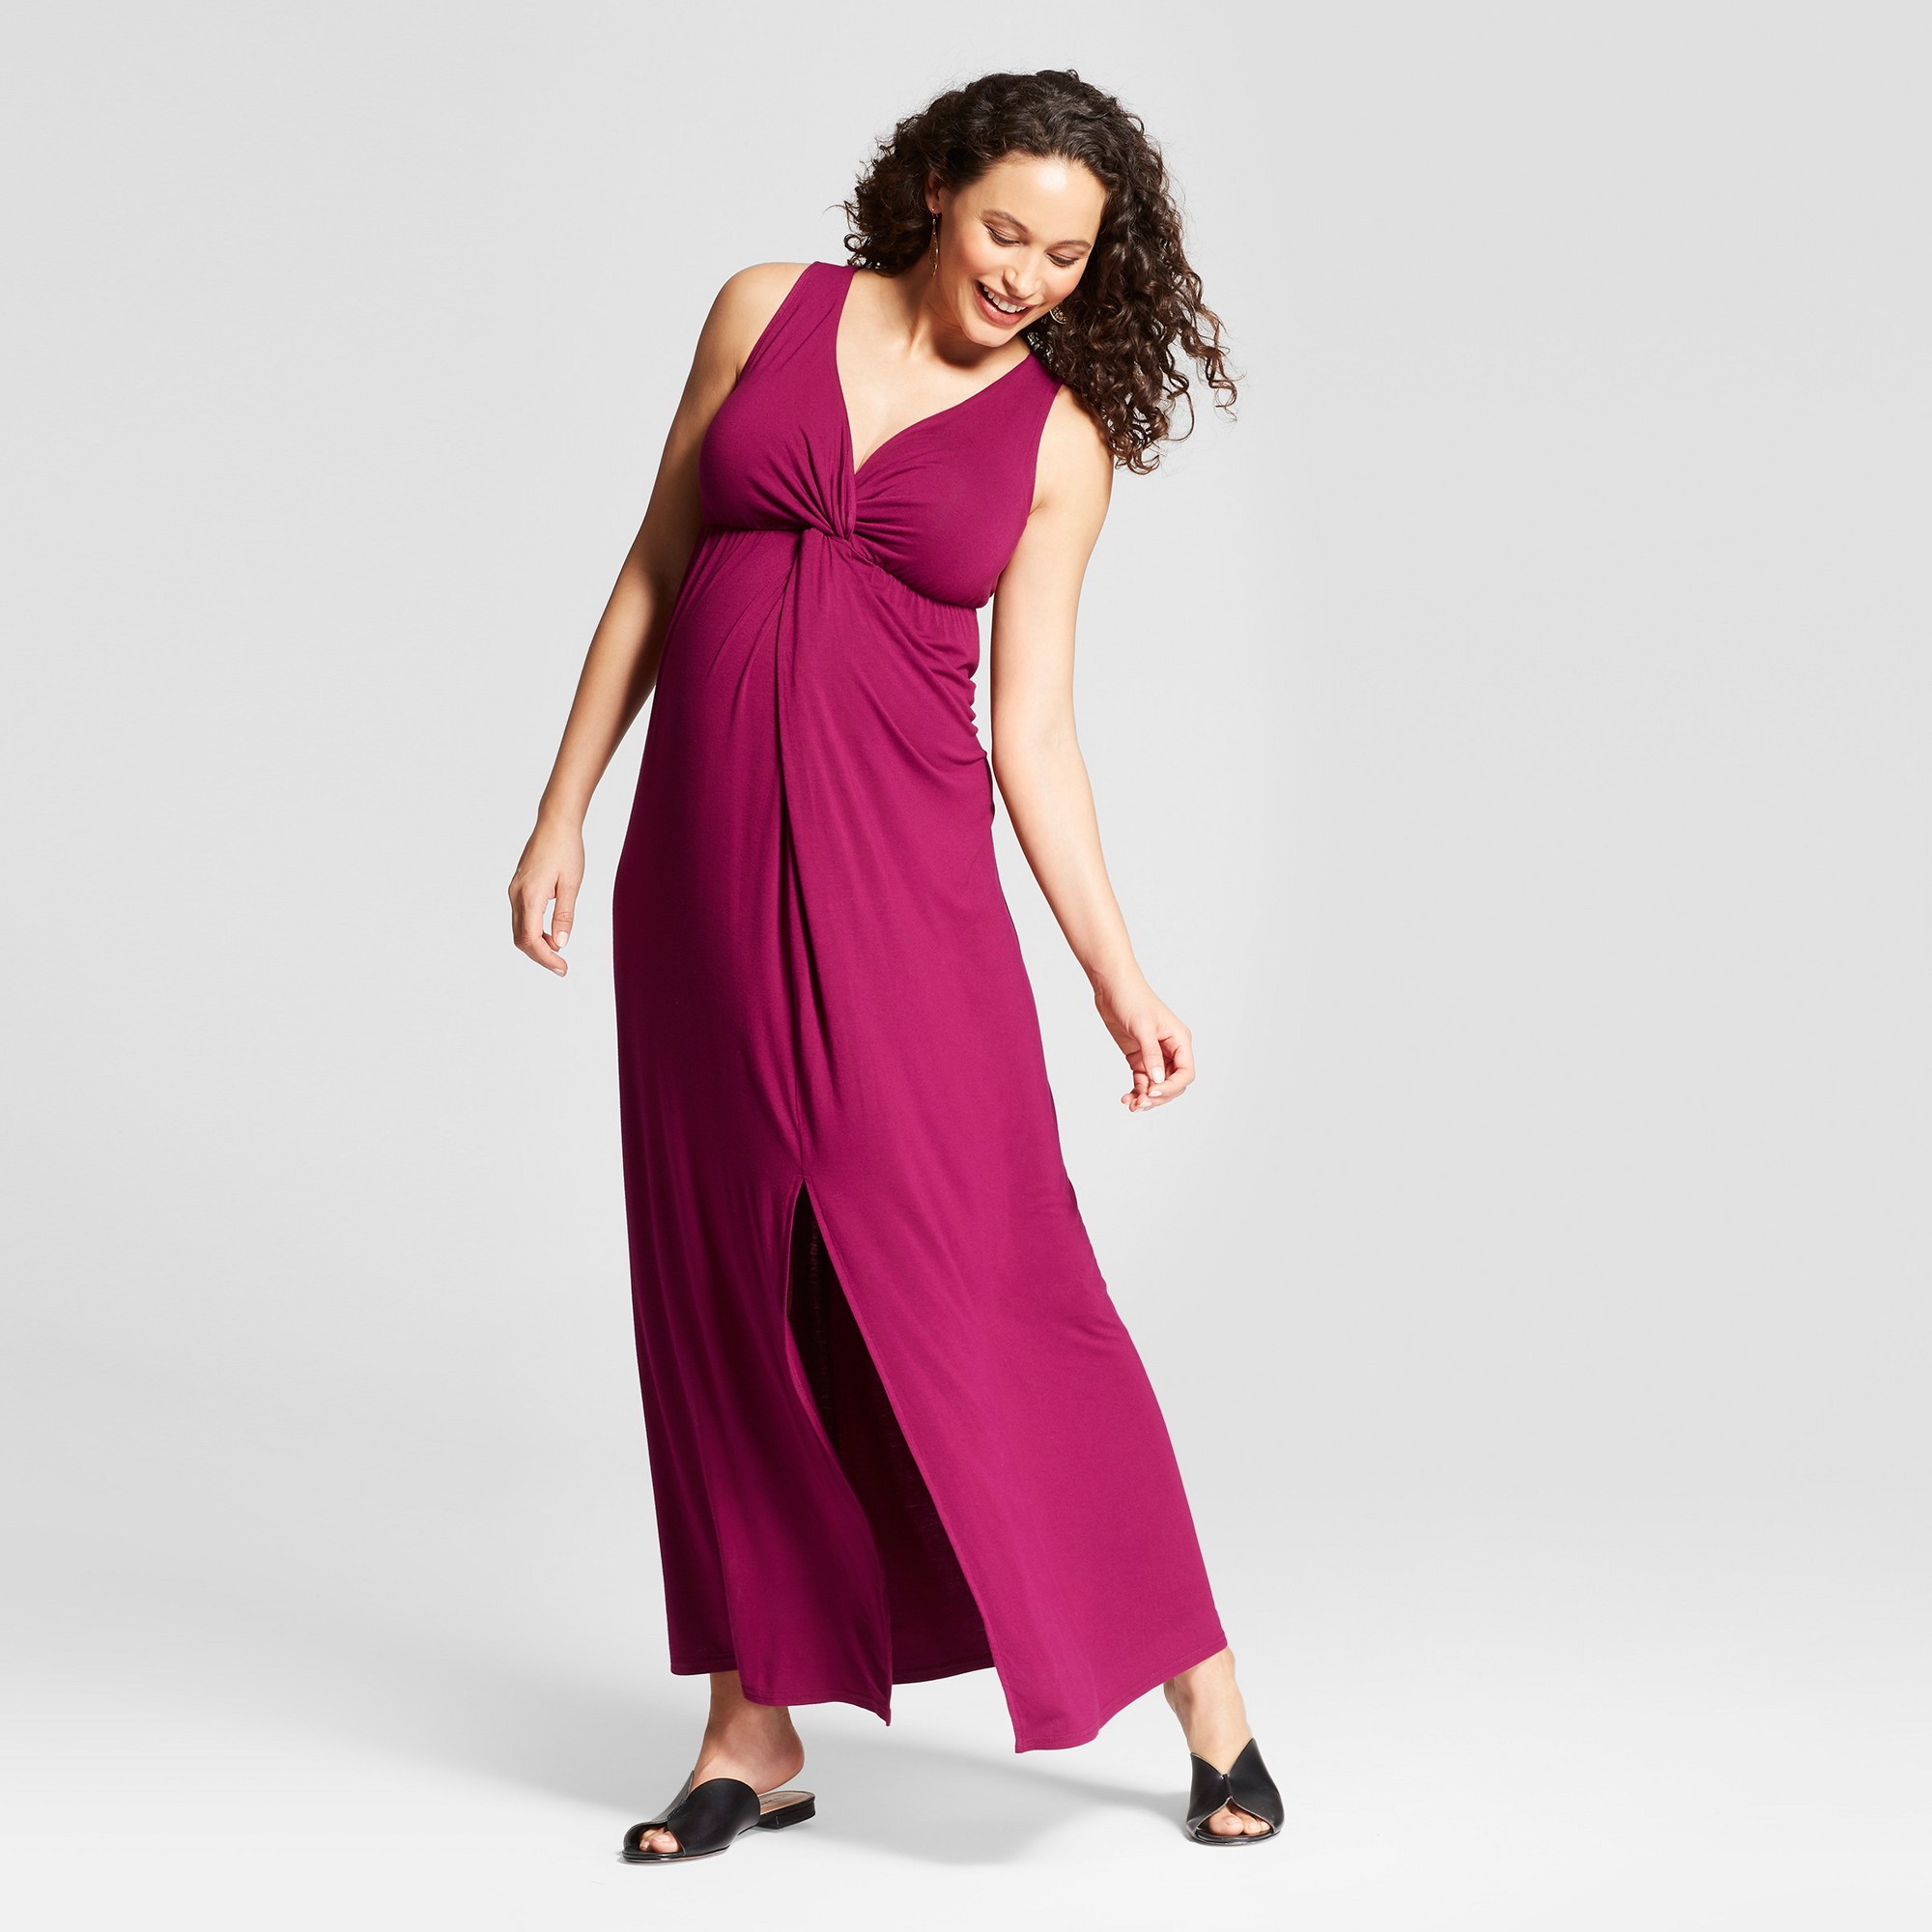 3a035ad41c5 Maternity Knit Crossover Maxi Dress - Isabel Maternity by Ingrid   Isabel  Forever Berry XS